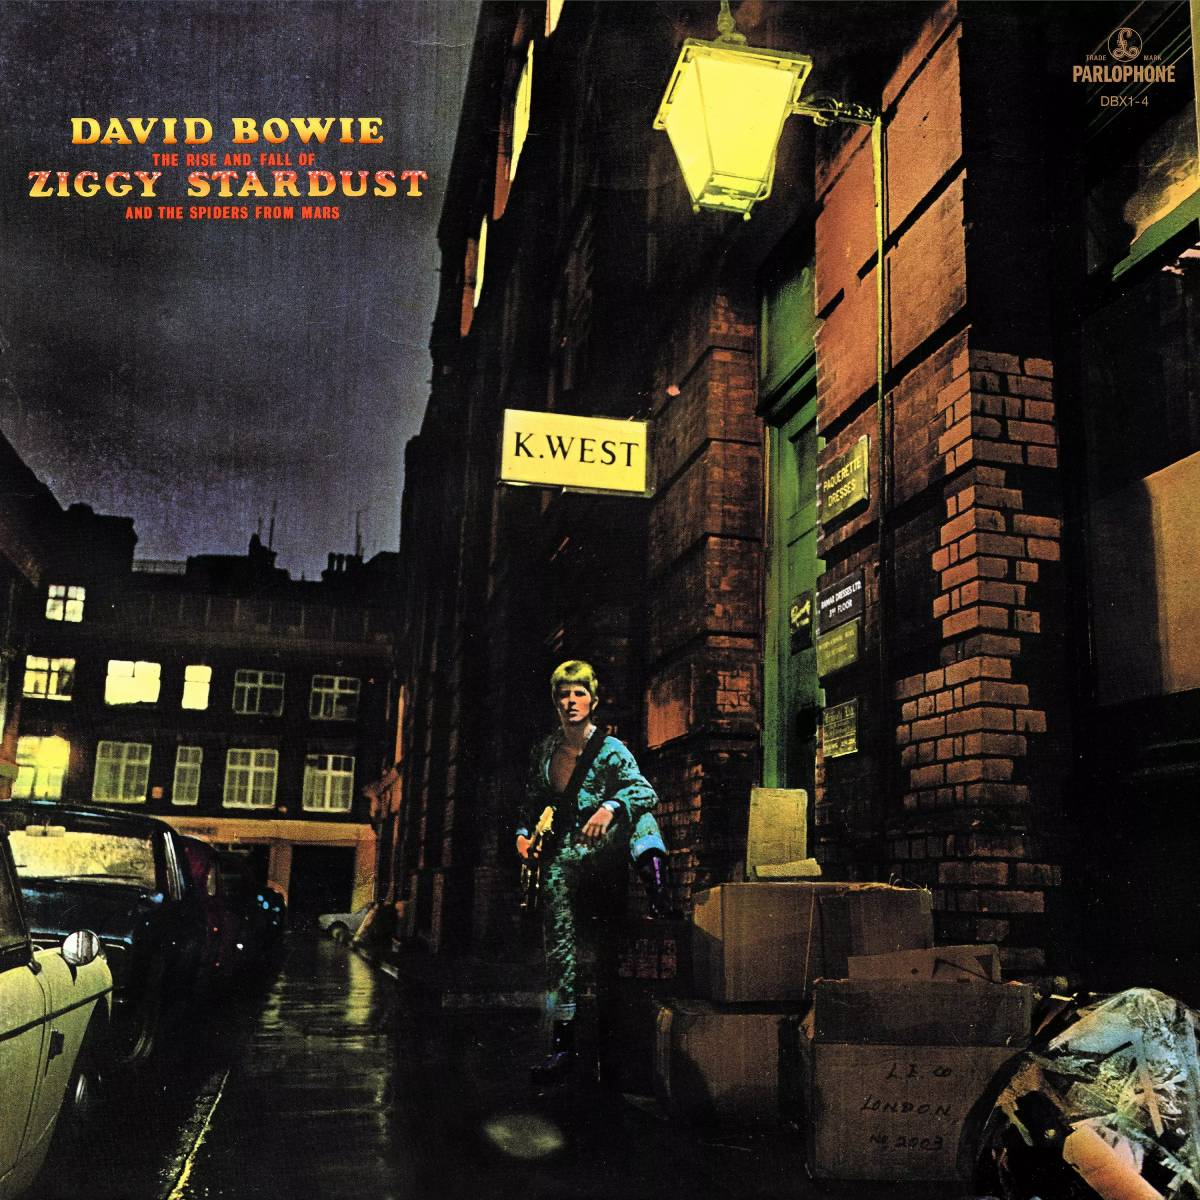 Обложка альбома Дэвида Боуи The Rise And Fall Of Ziggy Stardust And The Spiders From Mars